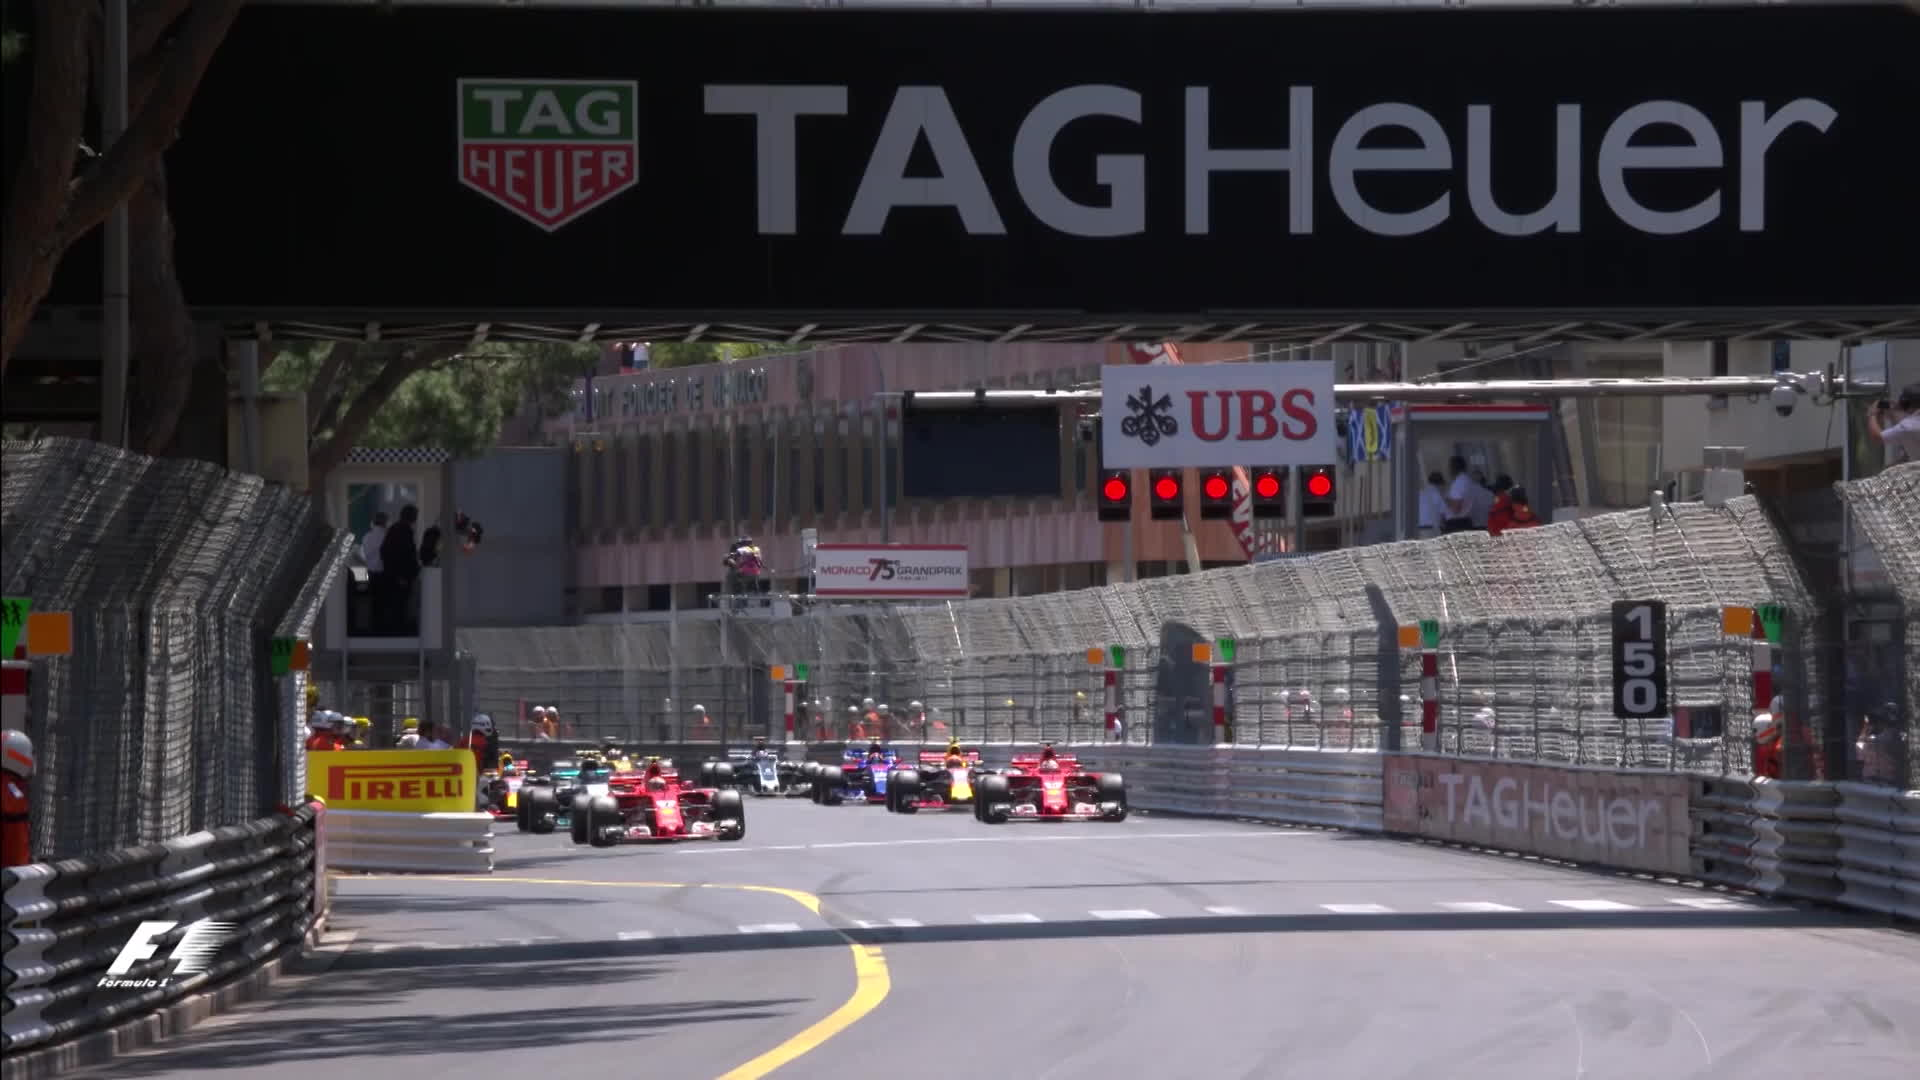 f1, formula 1, formula one, 2017 Monaco Grand Prix: Race Highlights GIFs